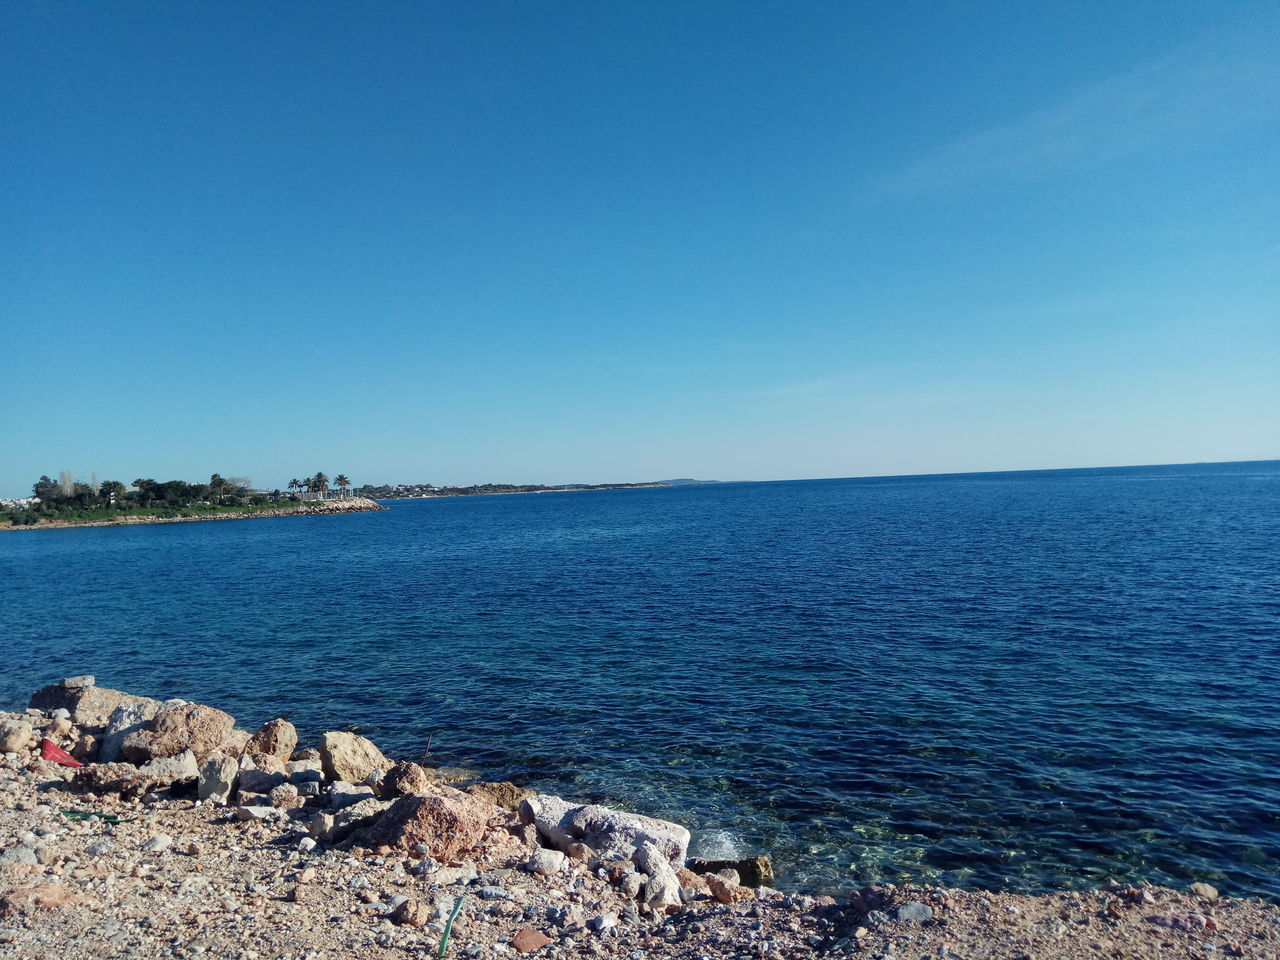 Blue Sea Sky Water Clear Sky Tranquility Outdoors Day Beach Beauty In Nature Nature Scenics Horizon Over Water Tranquil Scene No People Greece Photos Beauty In Nature Vacation Time Vacation Destination Travel Destinations Cloud - Sky